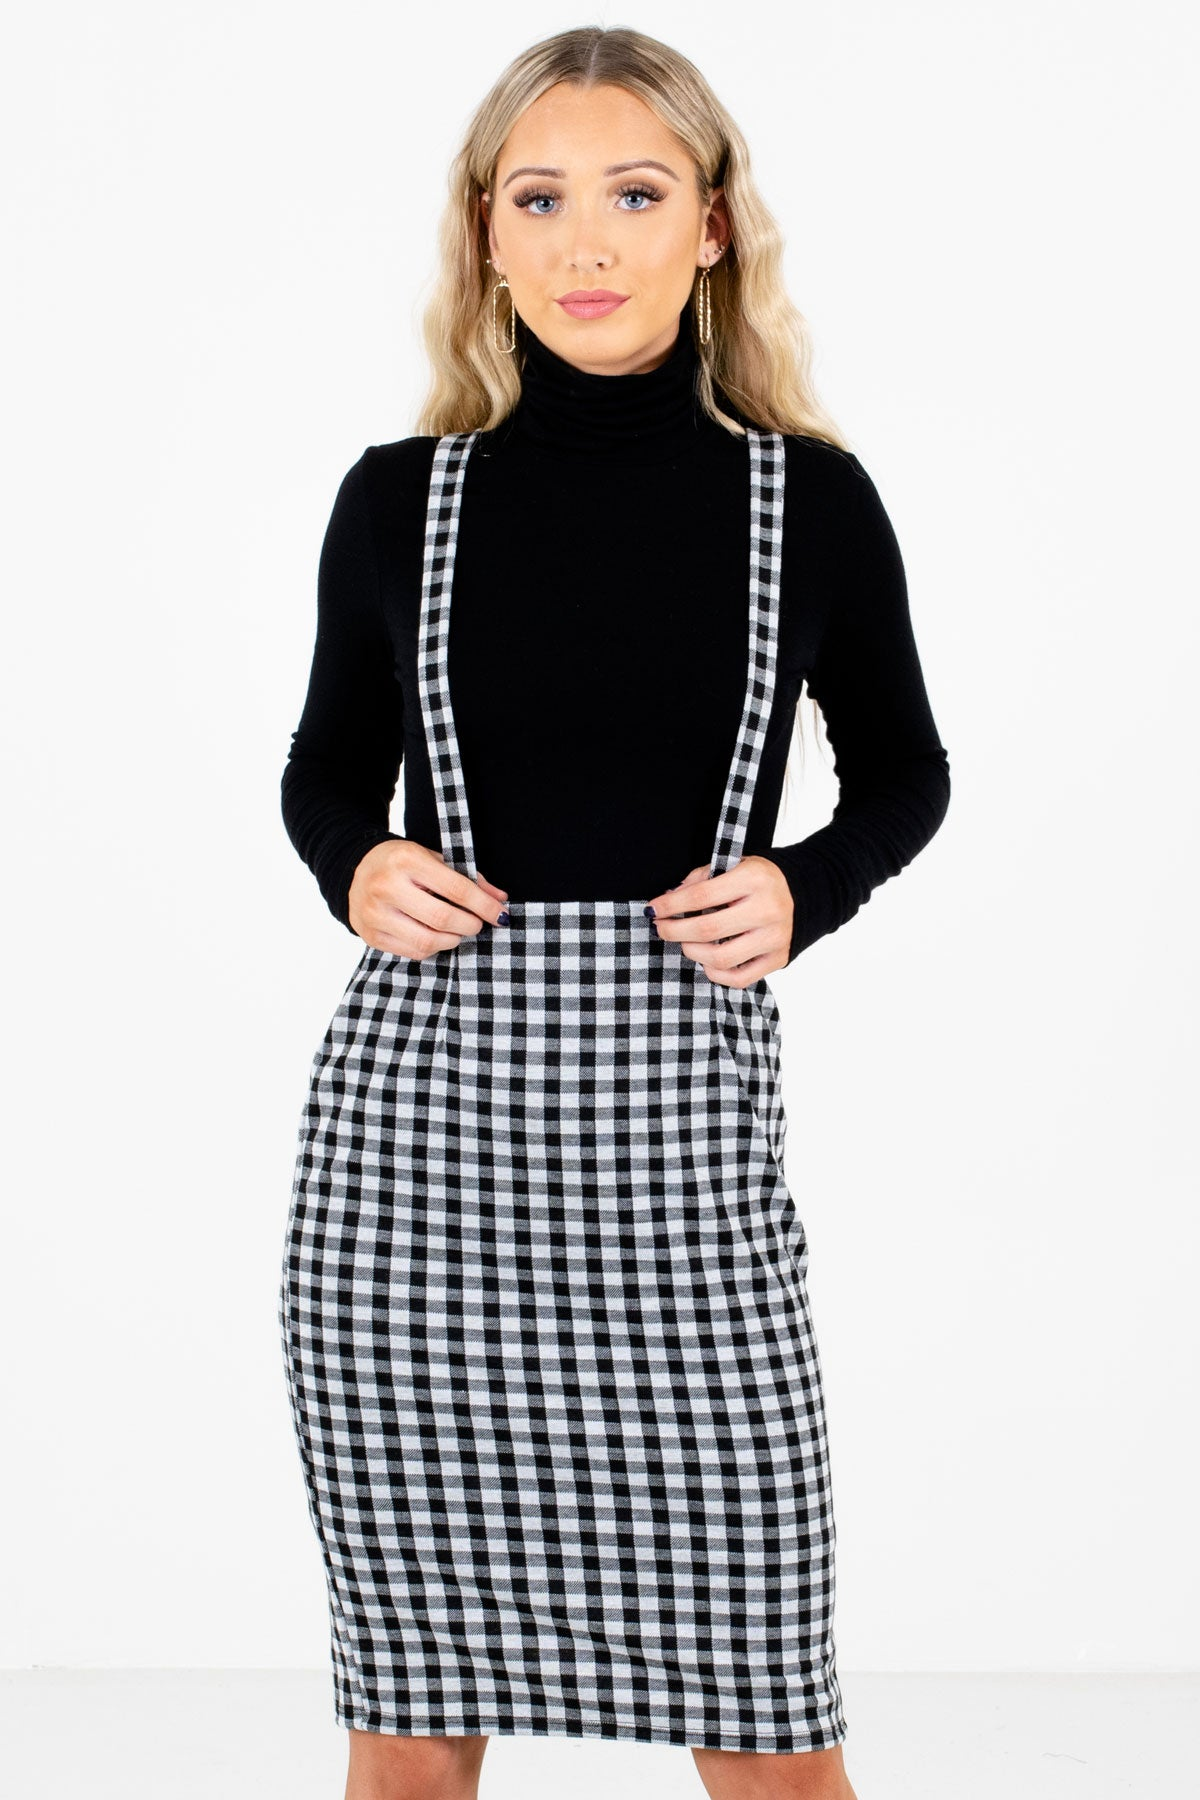 Gray and Black Gingham Pattern Boutique Knee-Length Skirts for Women